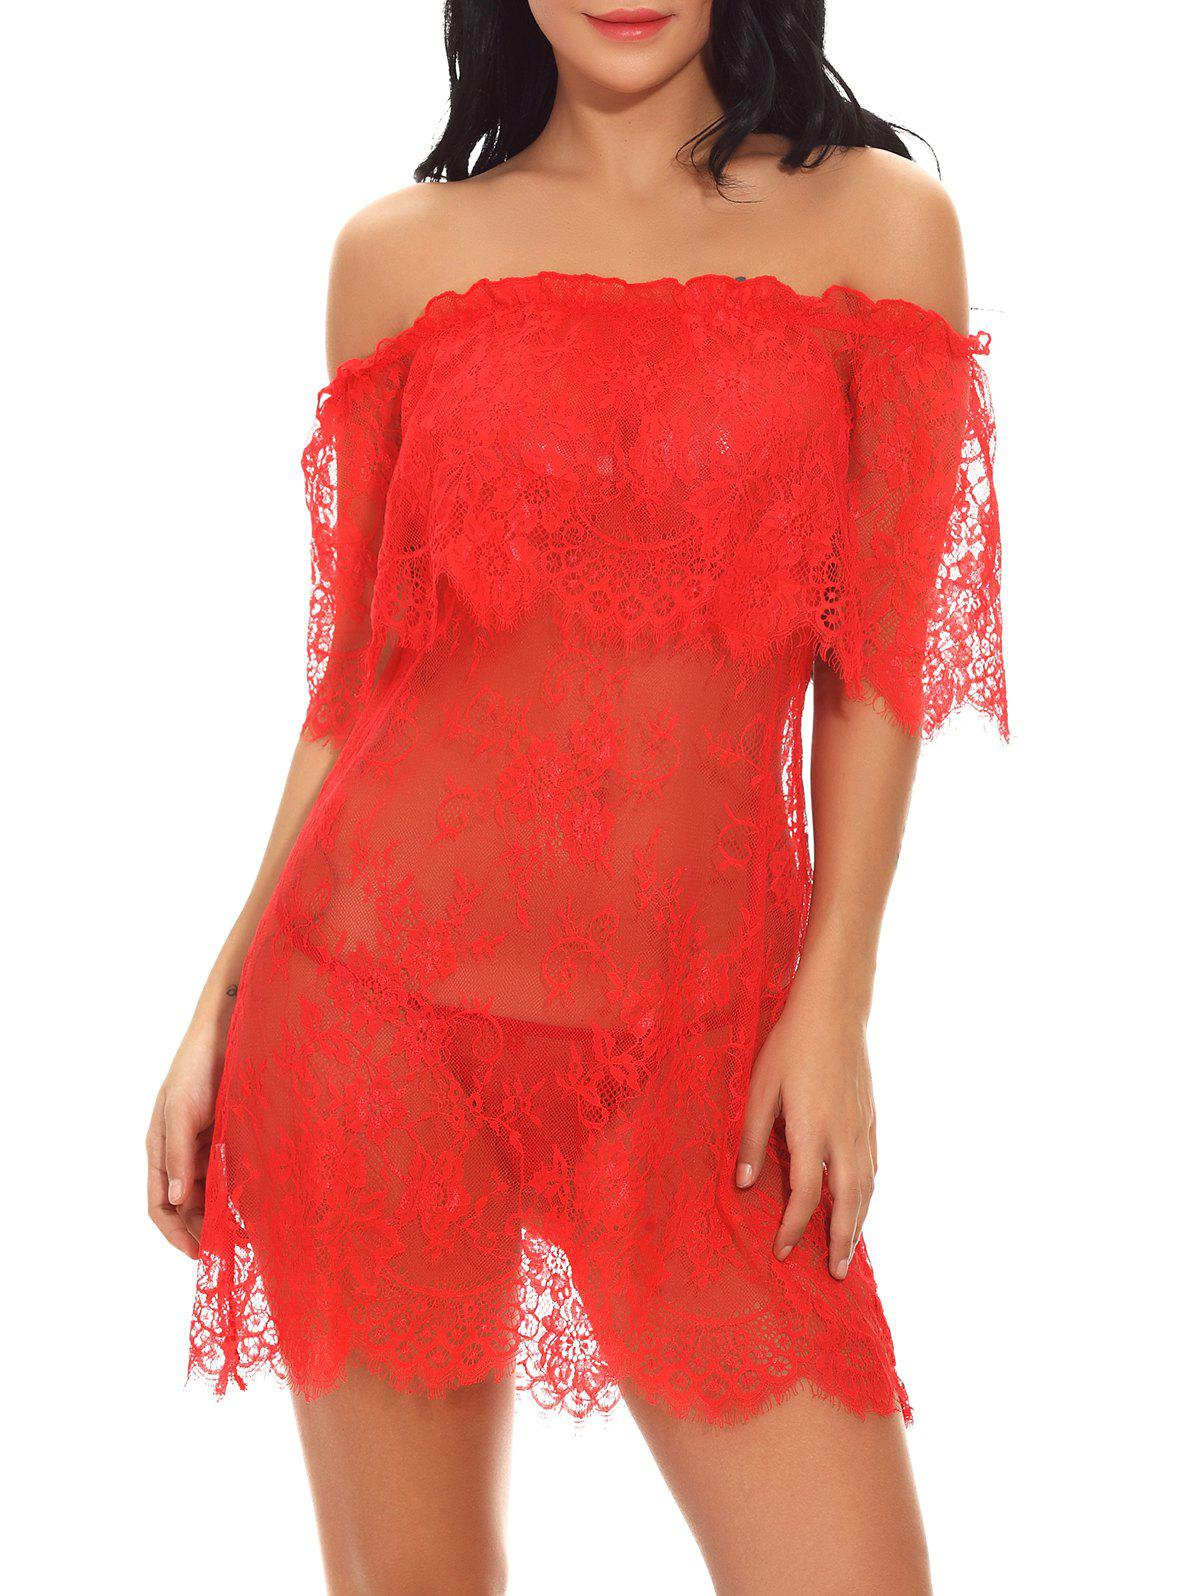 Latest Off Shoulder Sexy Lace Babydoll Lingeries Sleepdress